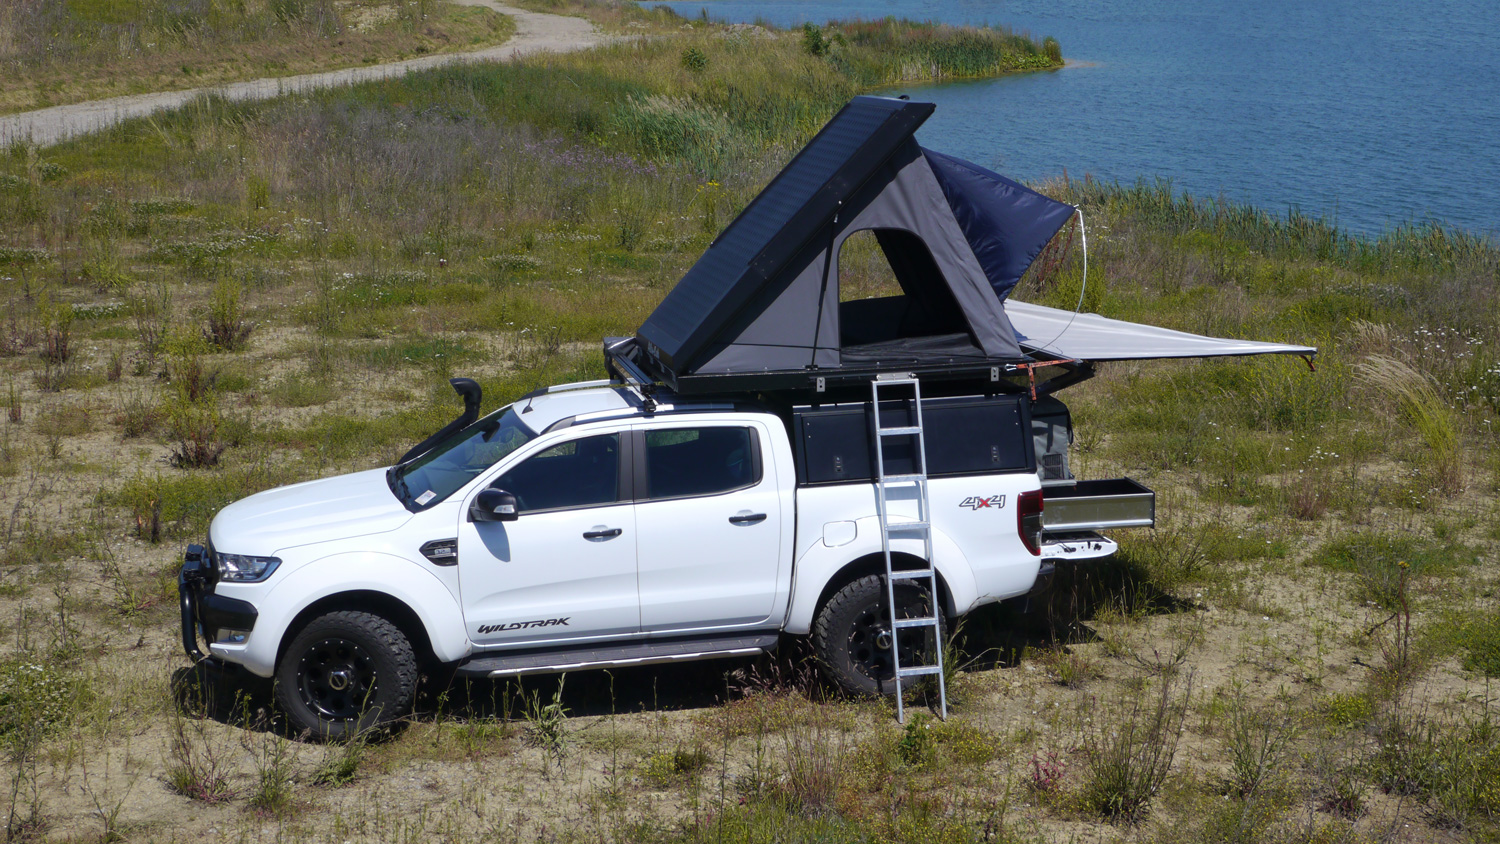 Alu-Cab-Hardtop-Explorer-3---Dachzelt-Expedition-3---Ford-Ranger-036-1500x844.jpg